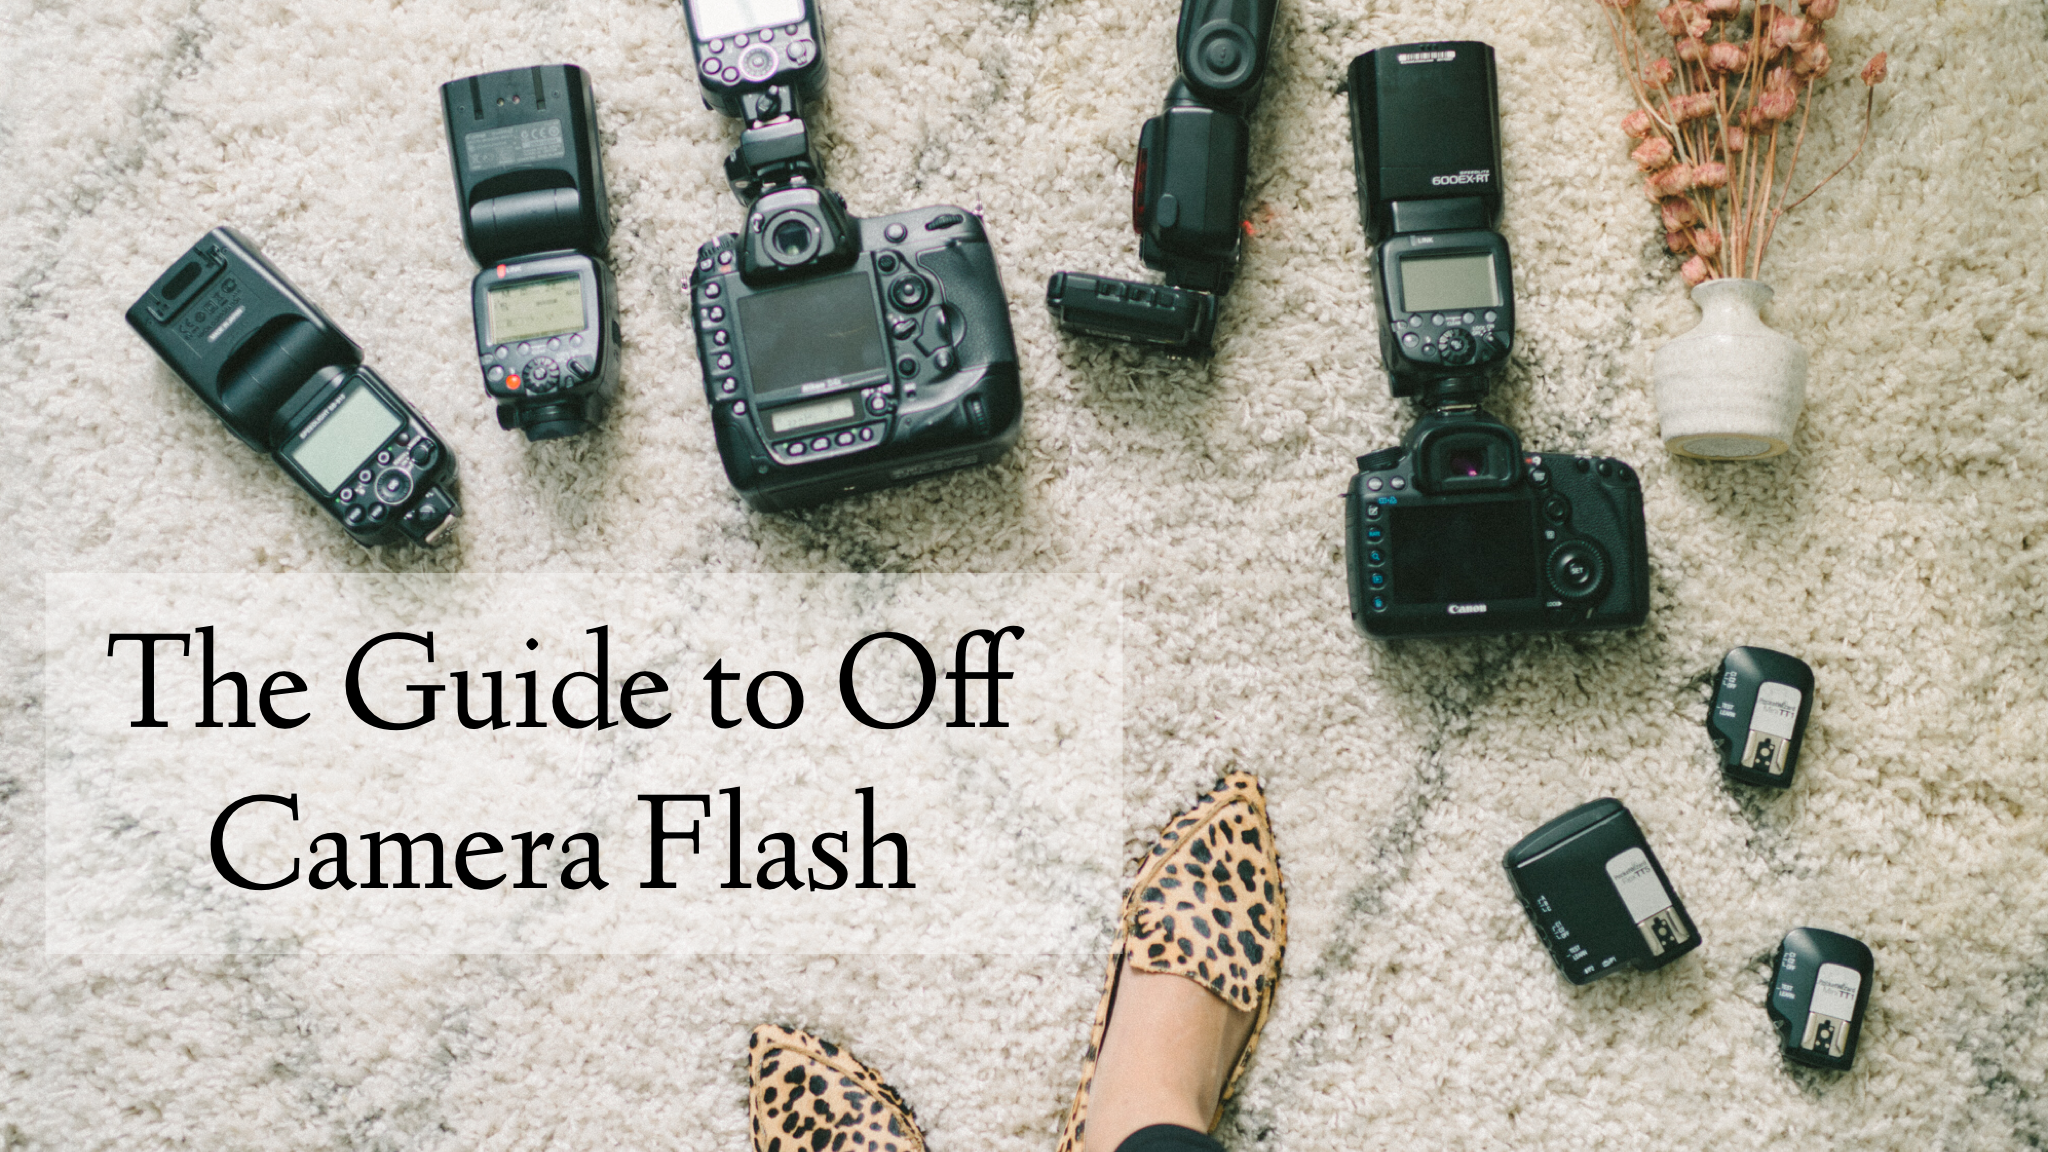 The Guide to Off Camera Flash